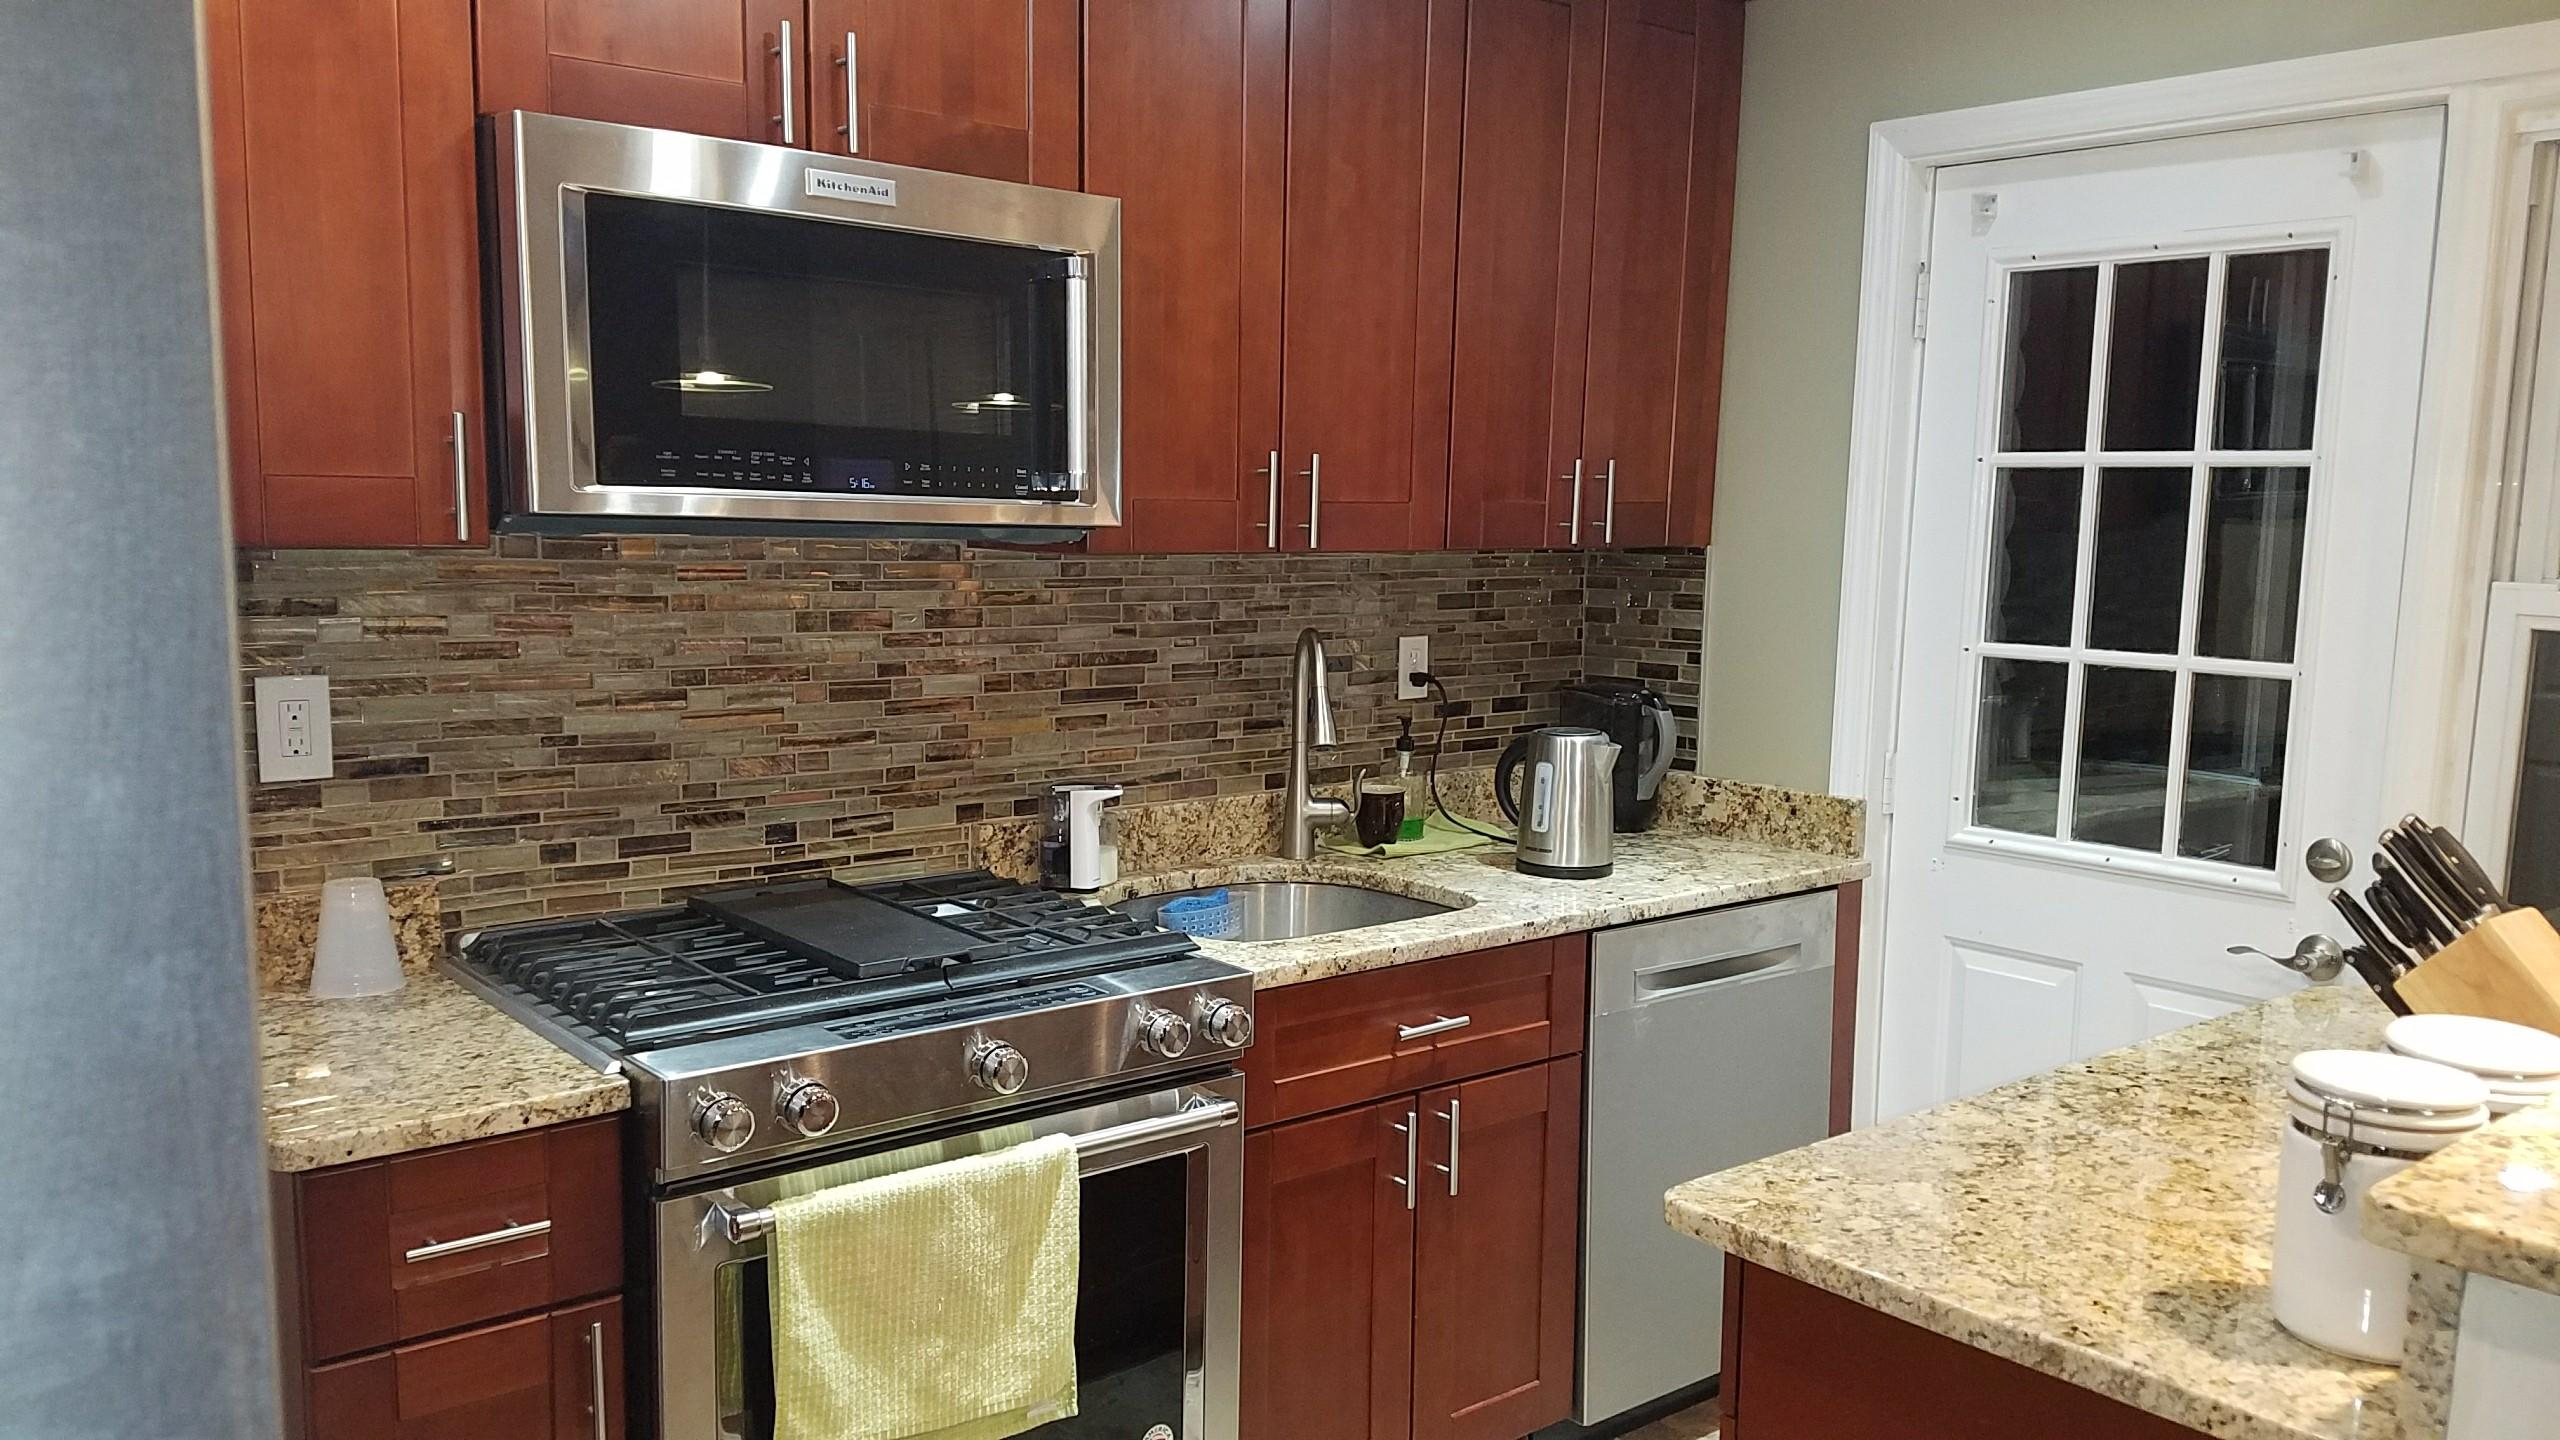 RMS Home Remodeling Is One Of The Top Rated Kitchen Renovation Contractors  In Central New Jersey. We Employ Skilled, Licensed Artisans That Are  Capable Of ...